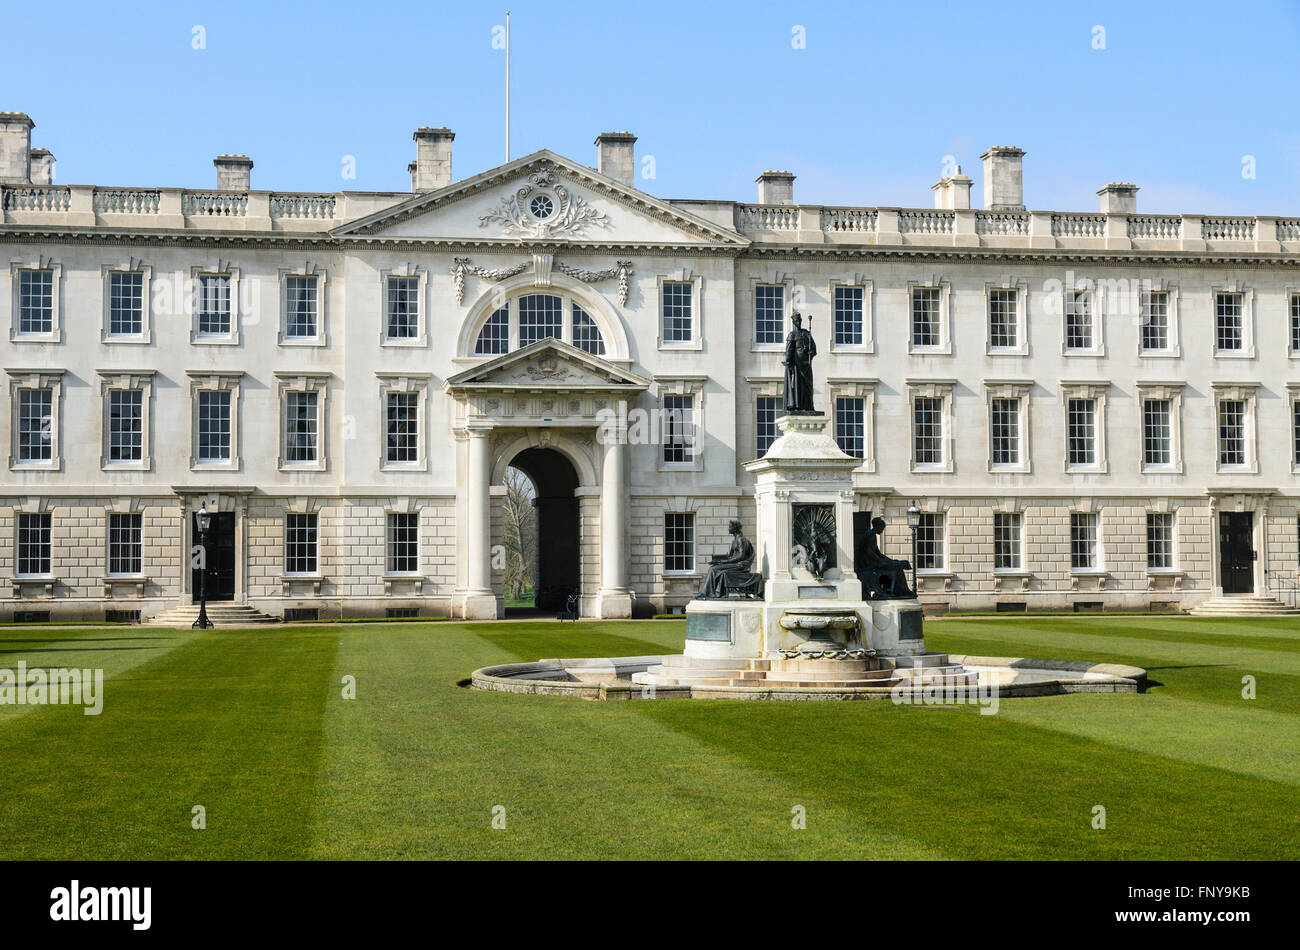 Kings College, University of Cambridge, Cambridge, England, UK. - Stock Image